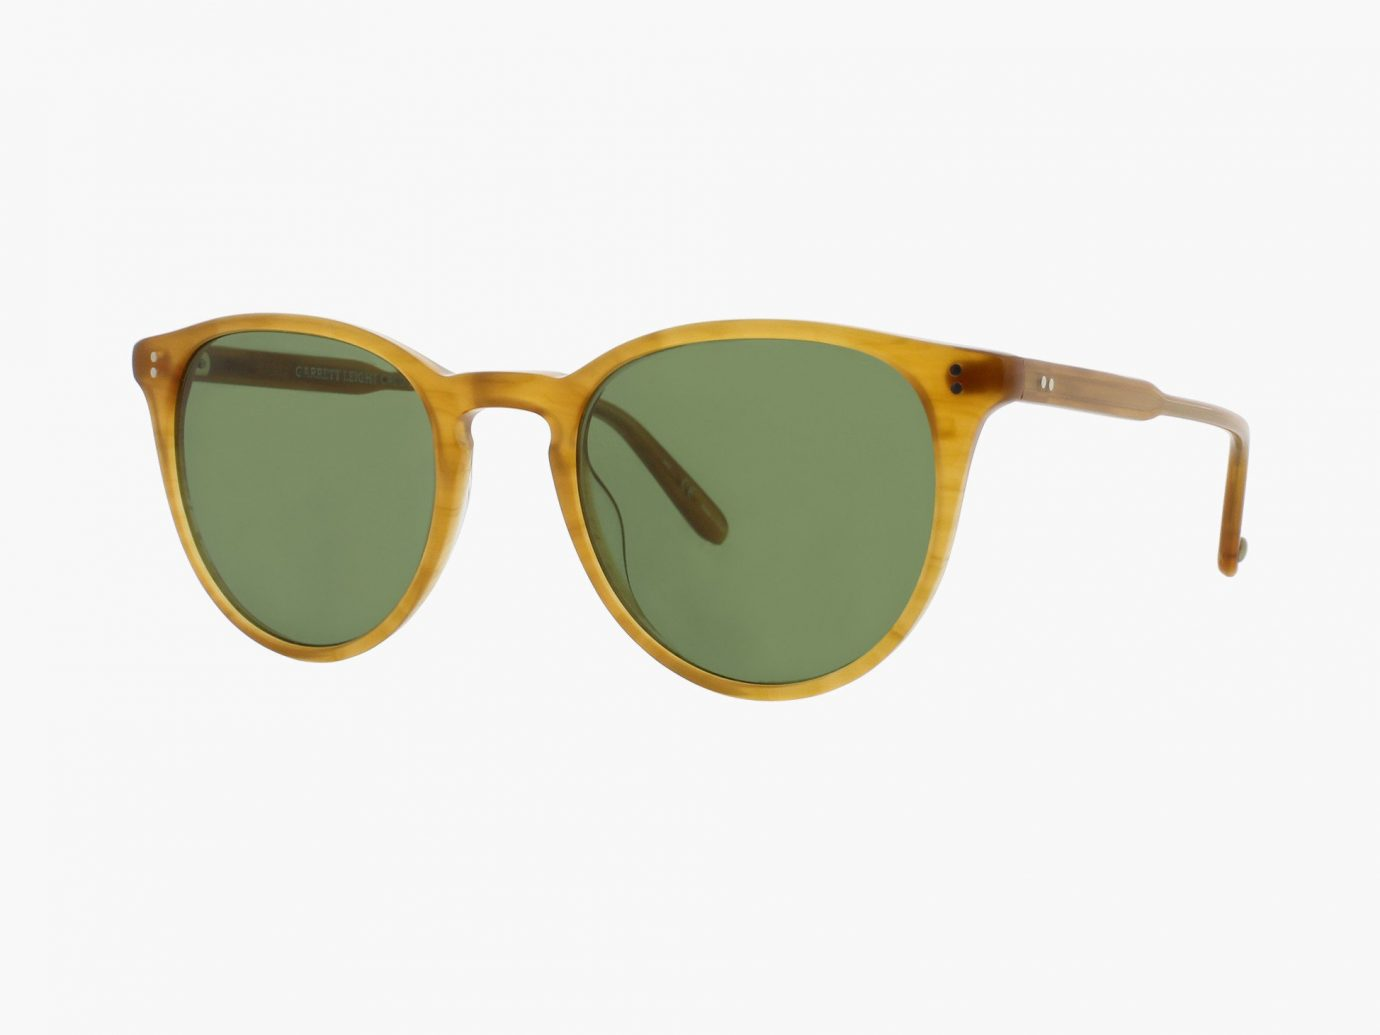 Style + Design spectacles eyewear sunglasses accessory yellow vision care glasses brown goggles product product design font